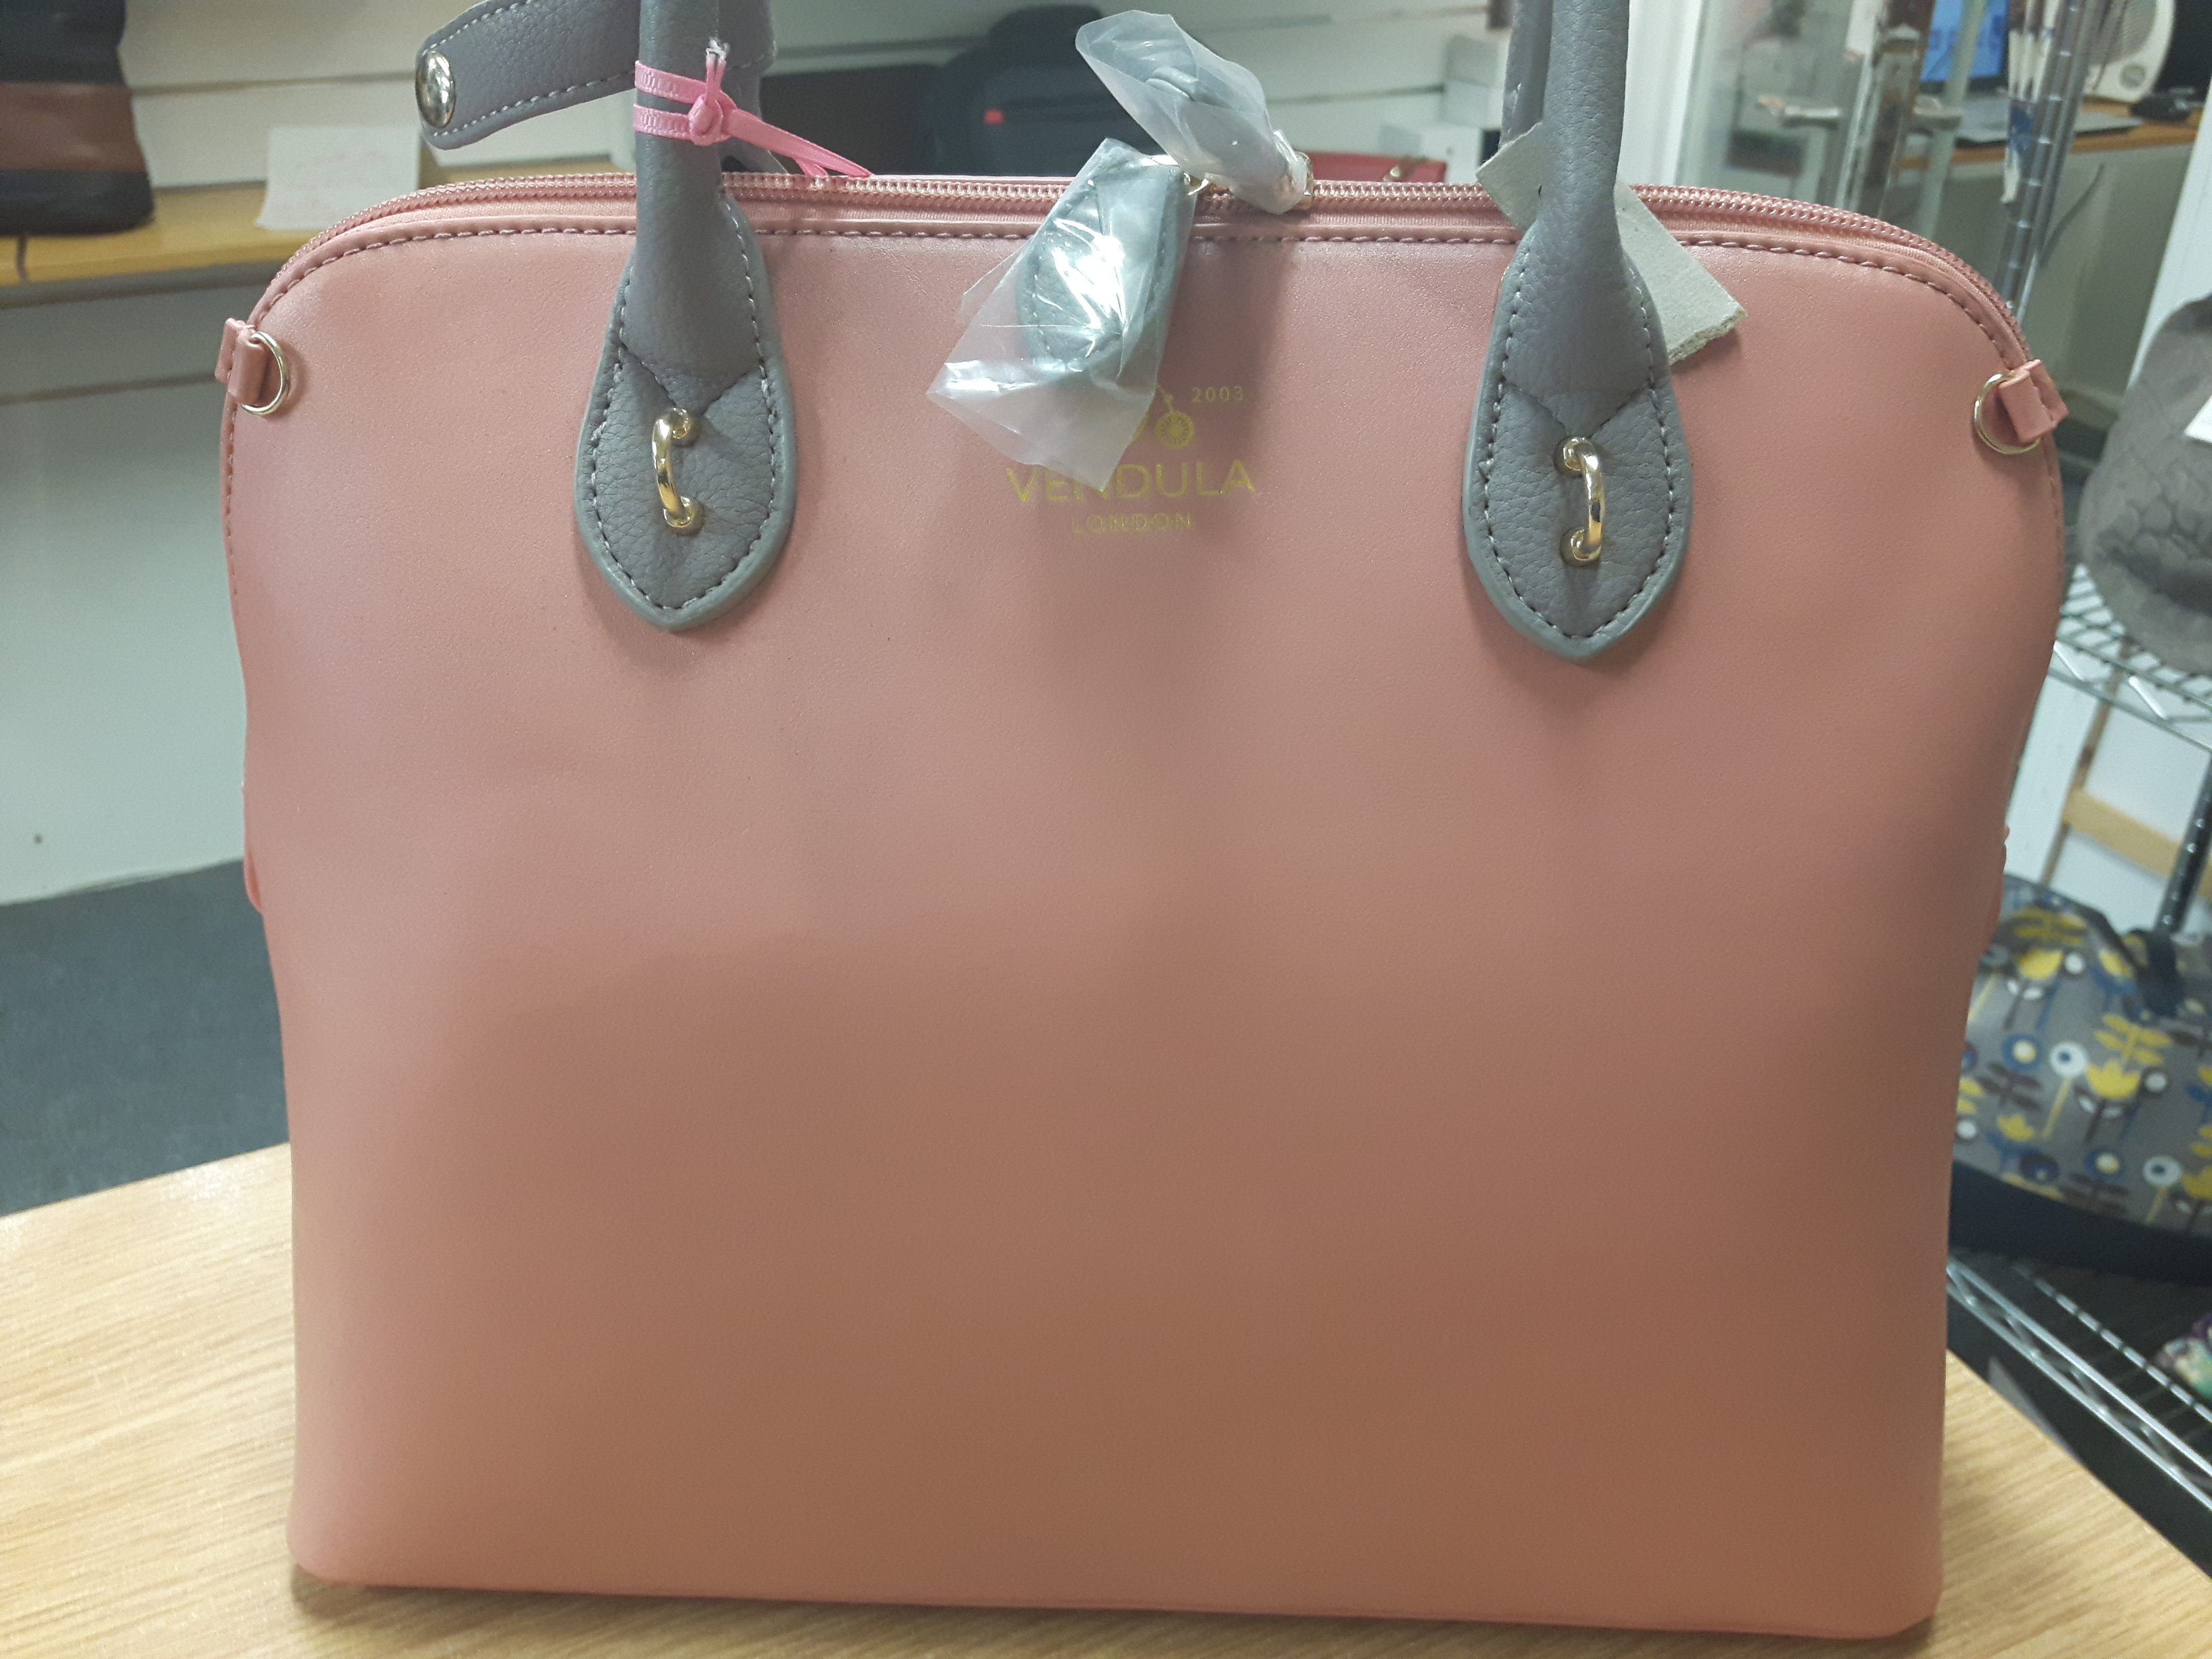 Vendula London Large Ladies Luxury Designer Maisy Bag in Rose Pink with Grey Handles